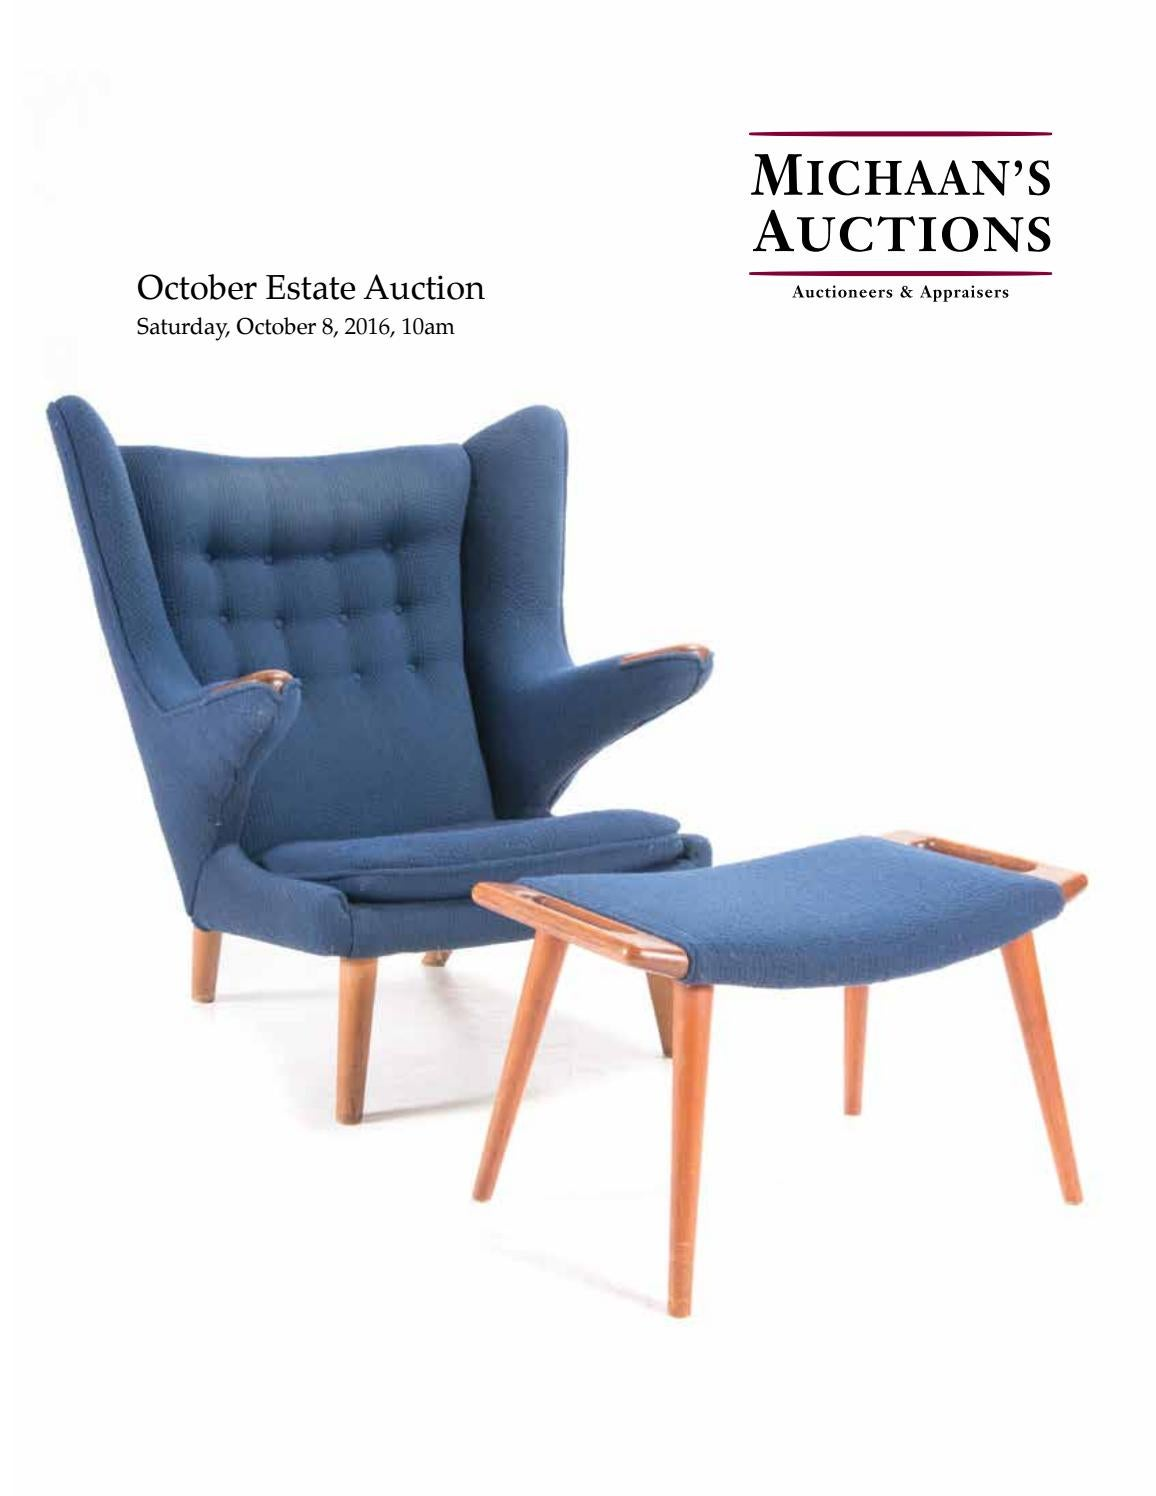 October Issuu Auctions Michaan's By Estate Auction Catalog vNOyn0wm8